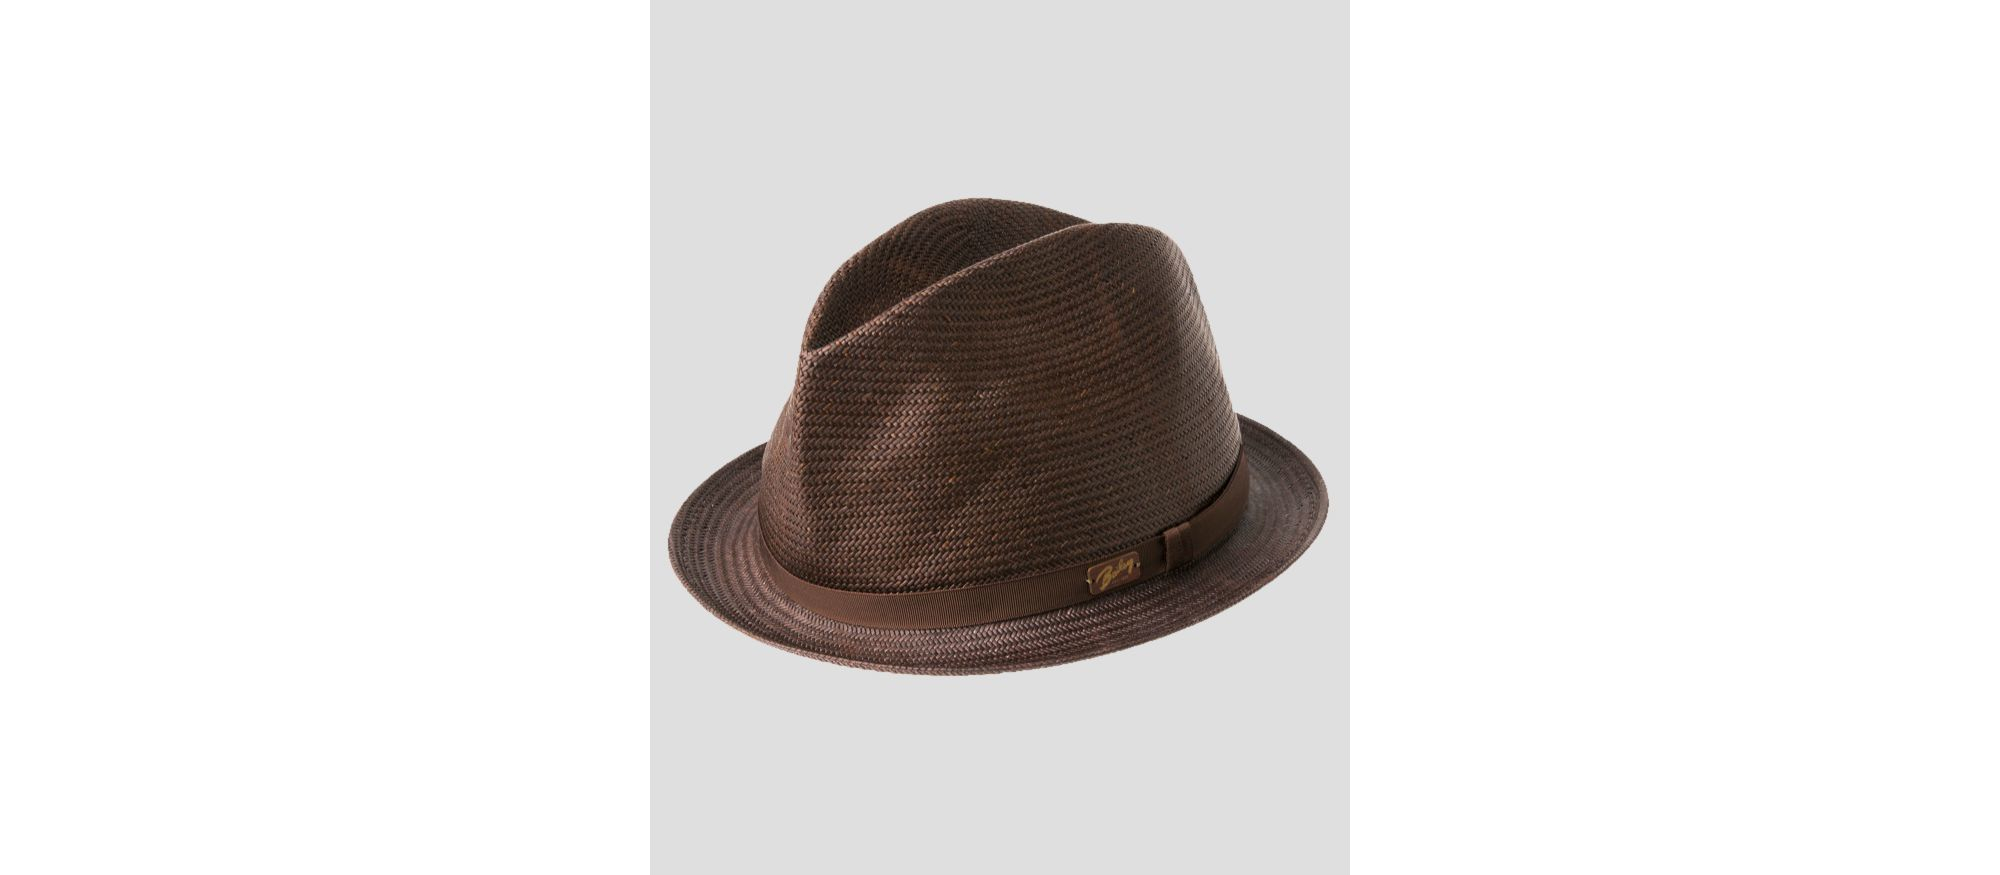 96f891b1222 Lyst - Bailey of Hollywood Loche Center Dent Crushed Straw Hat in ...